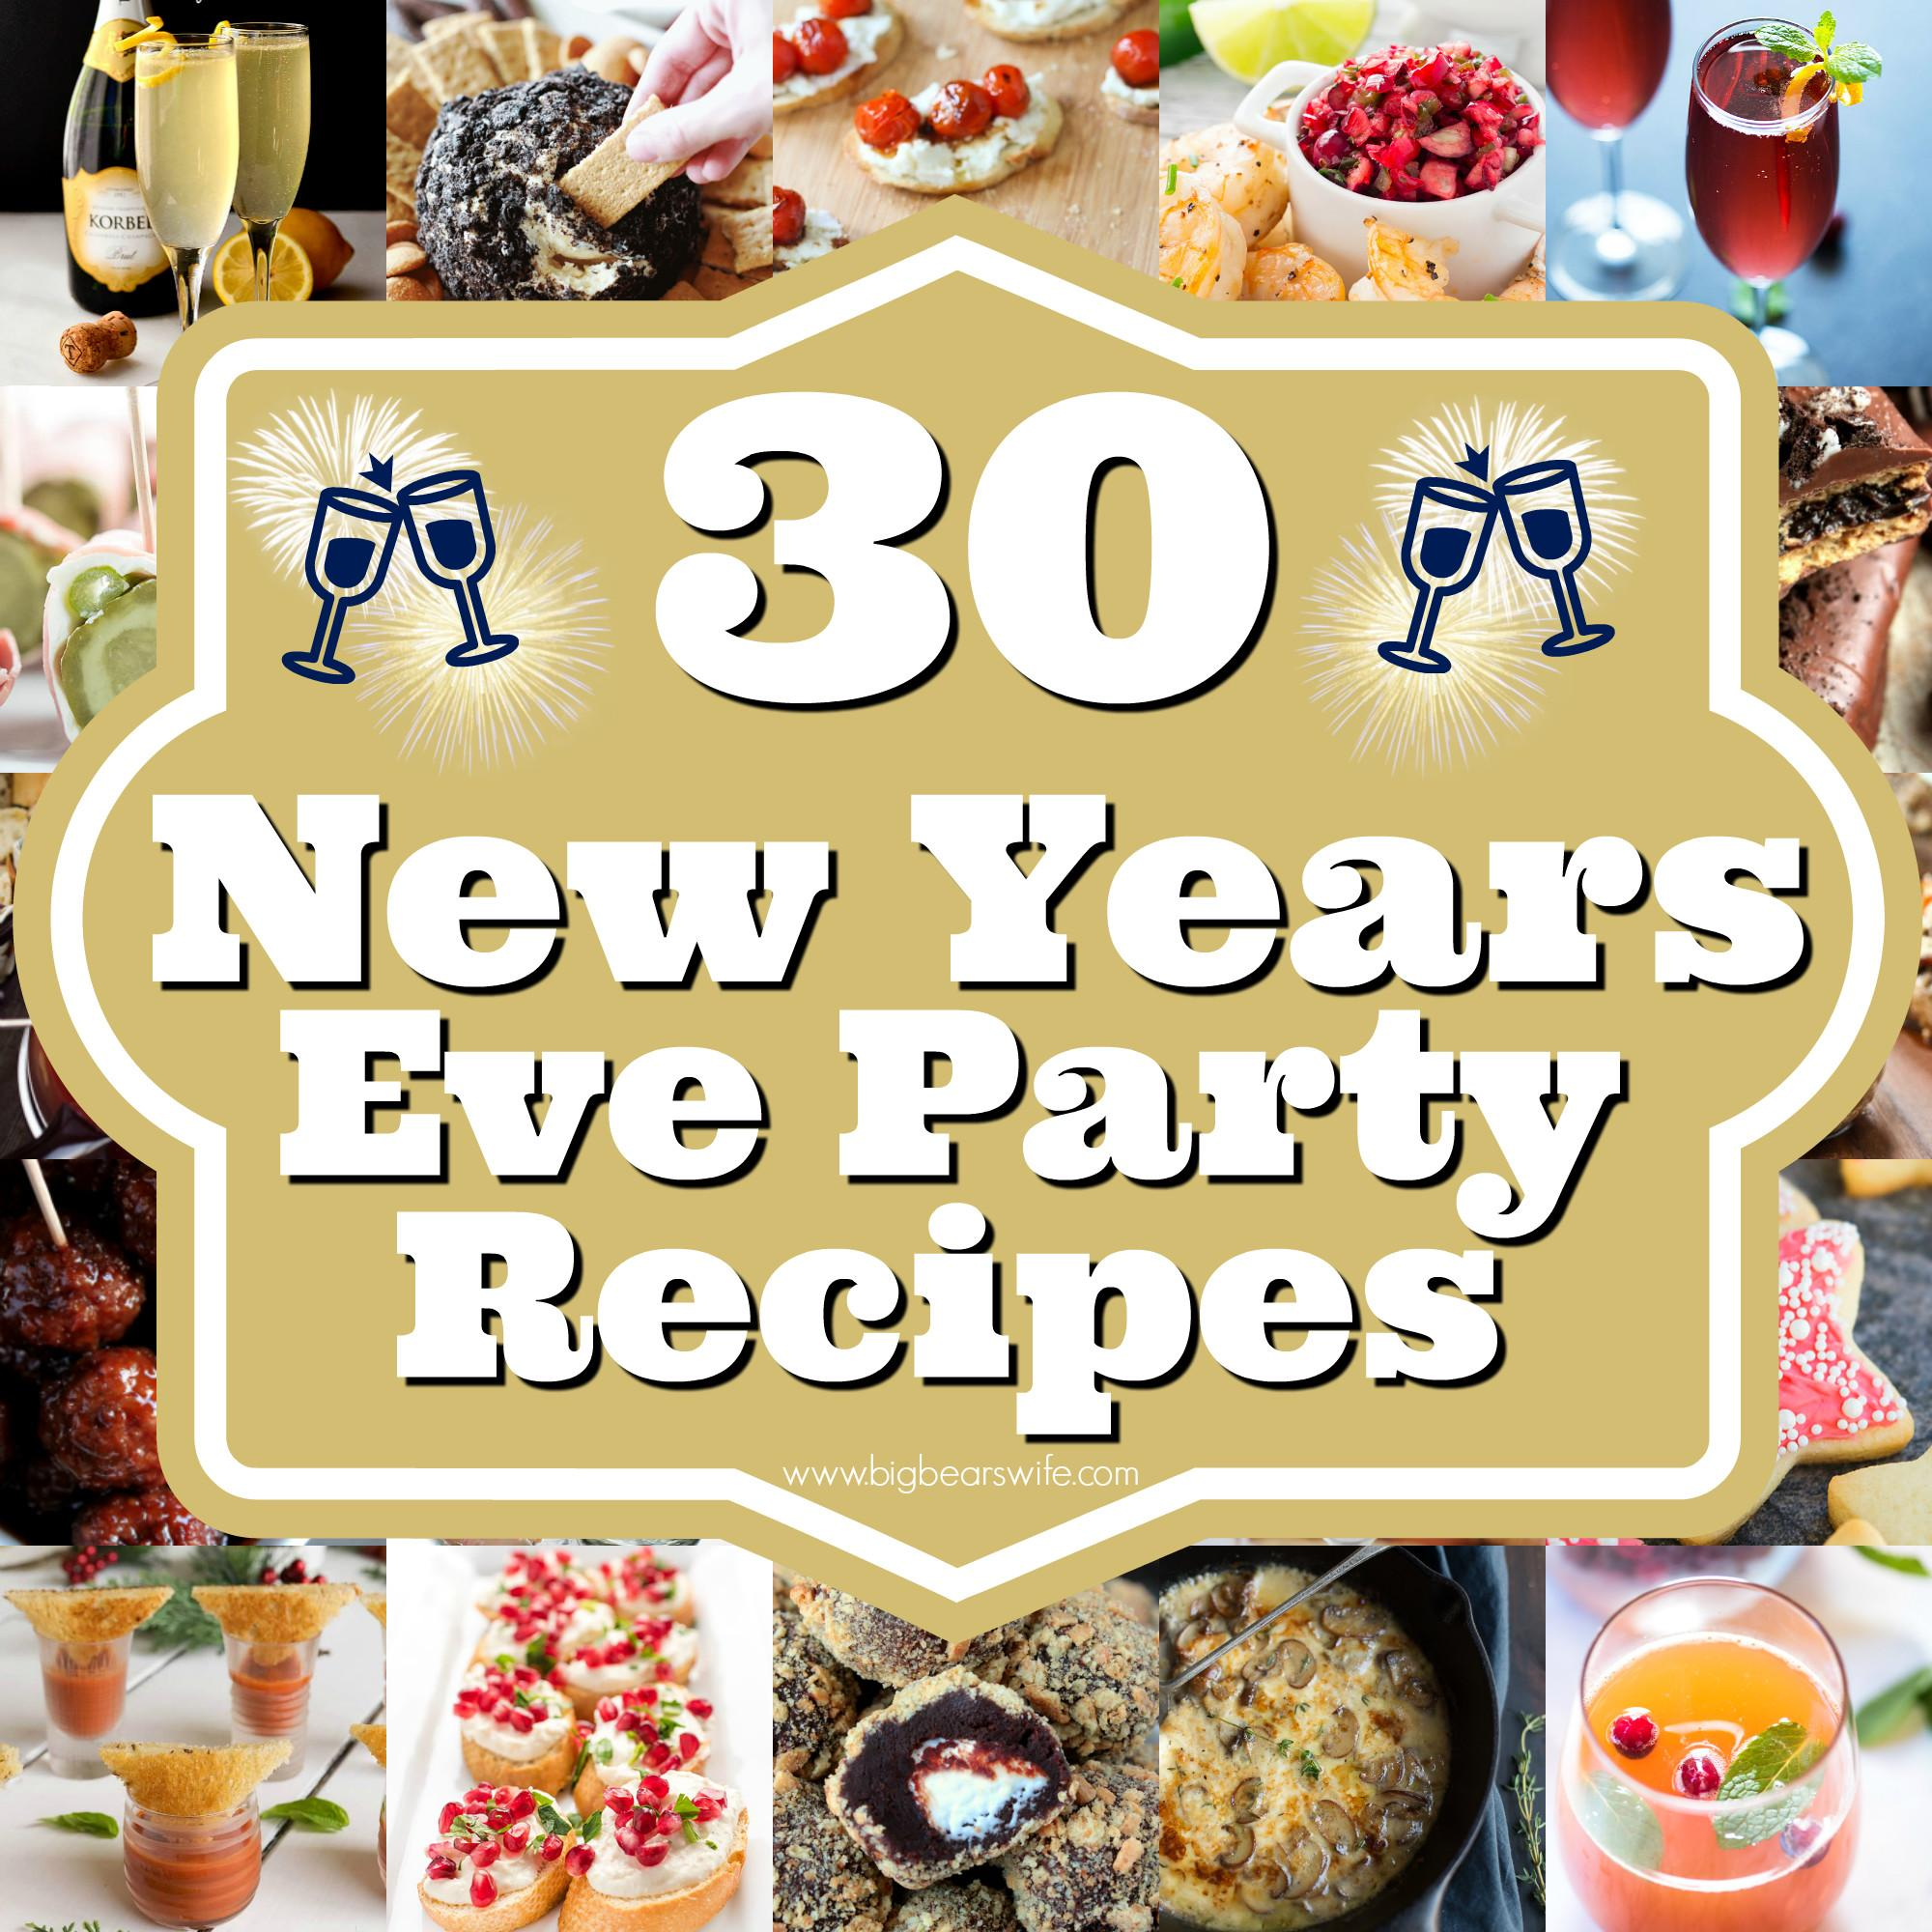 New Years Eve Party Recipes Savory Ideas Sweets